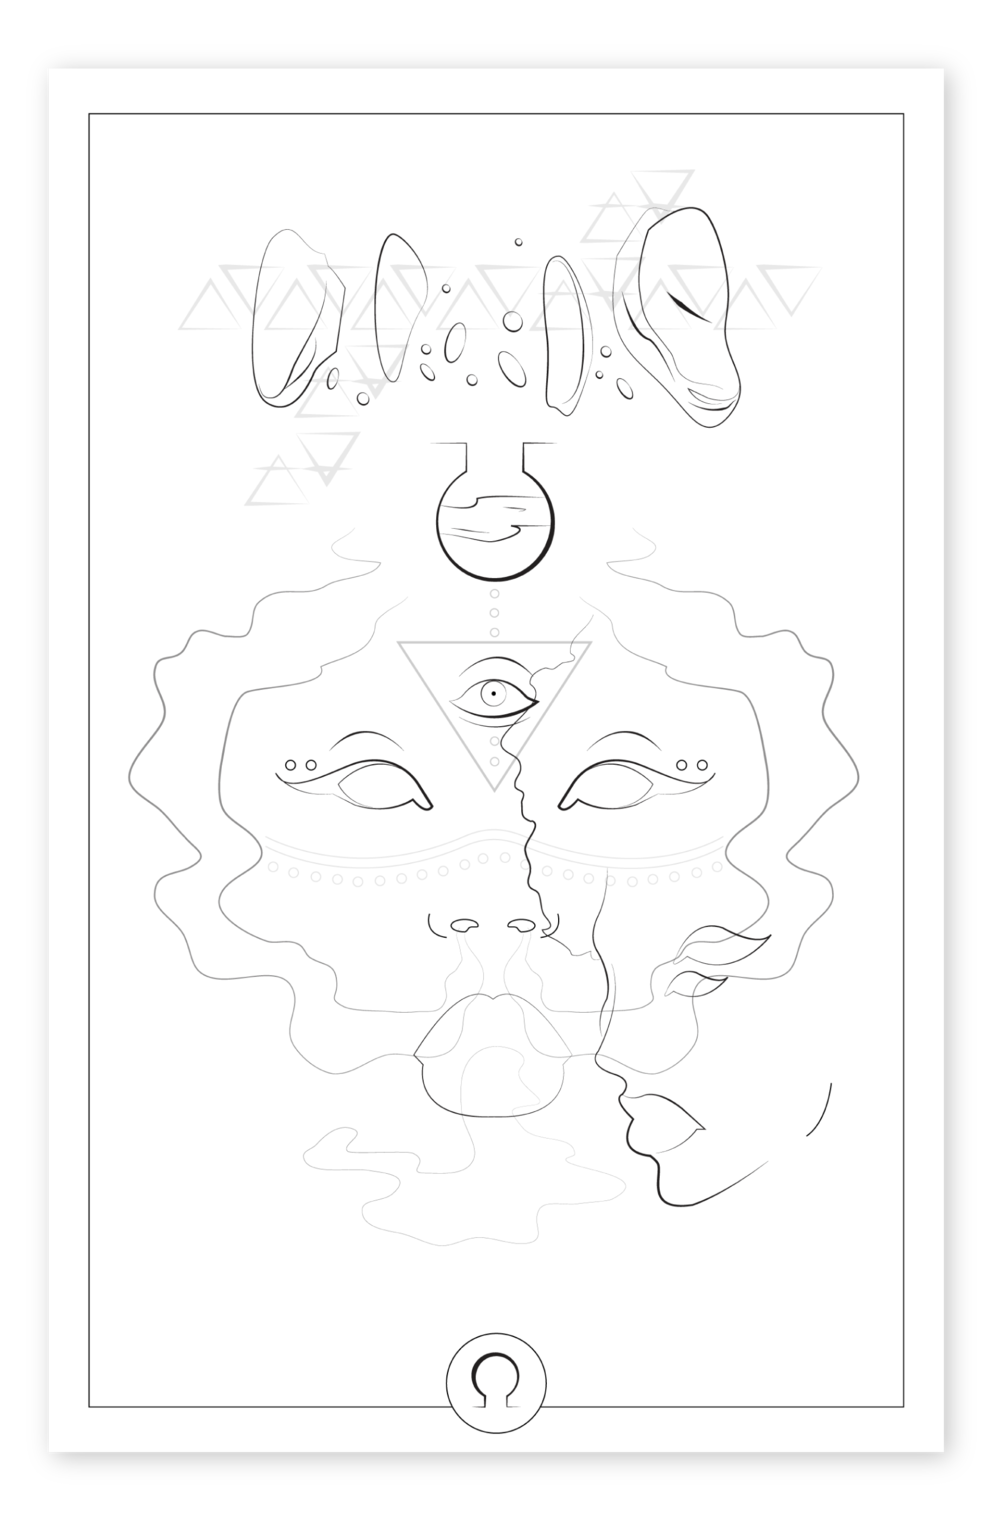 Unveiling-Visions-Outline.png